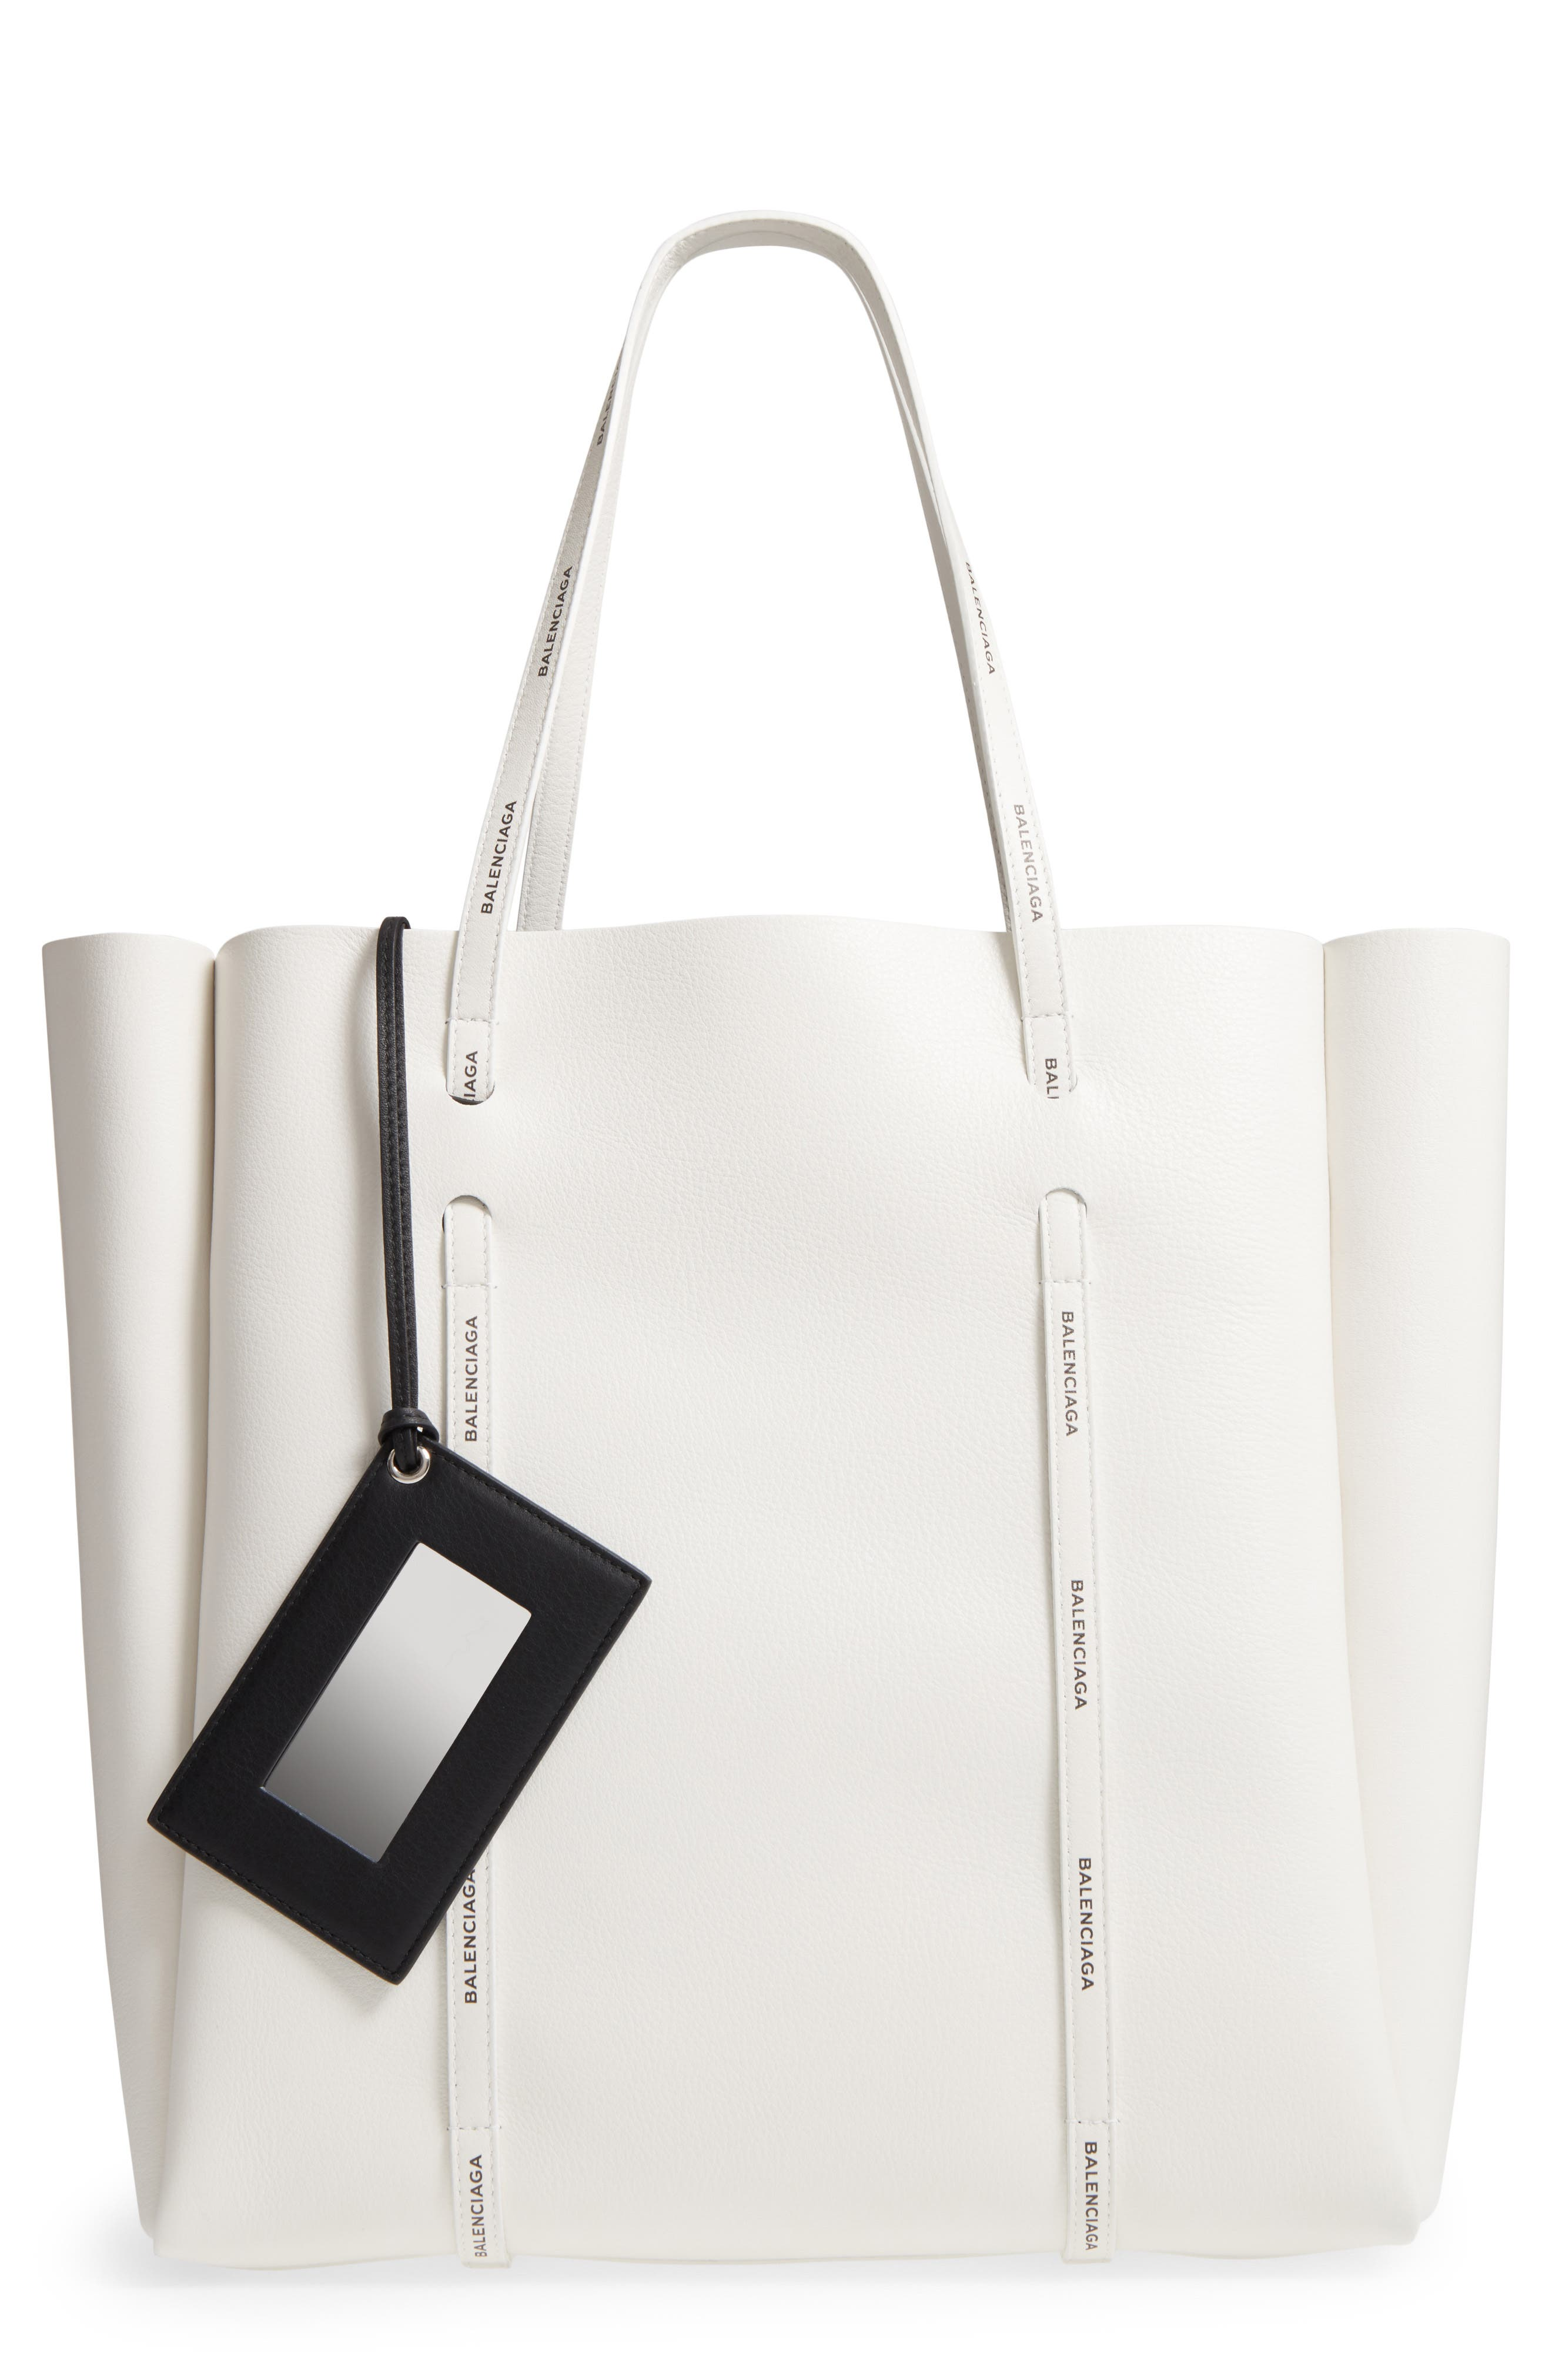 Medium Everyday Calfskin Tote,                             Main thumbnail 1, color,                             BLANC/ BLACK